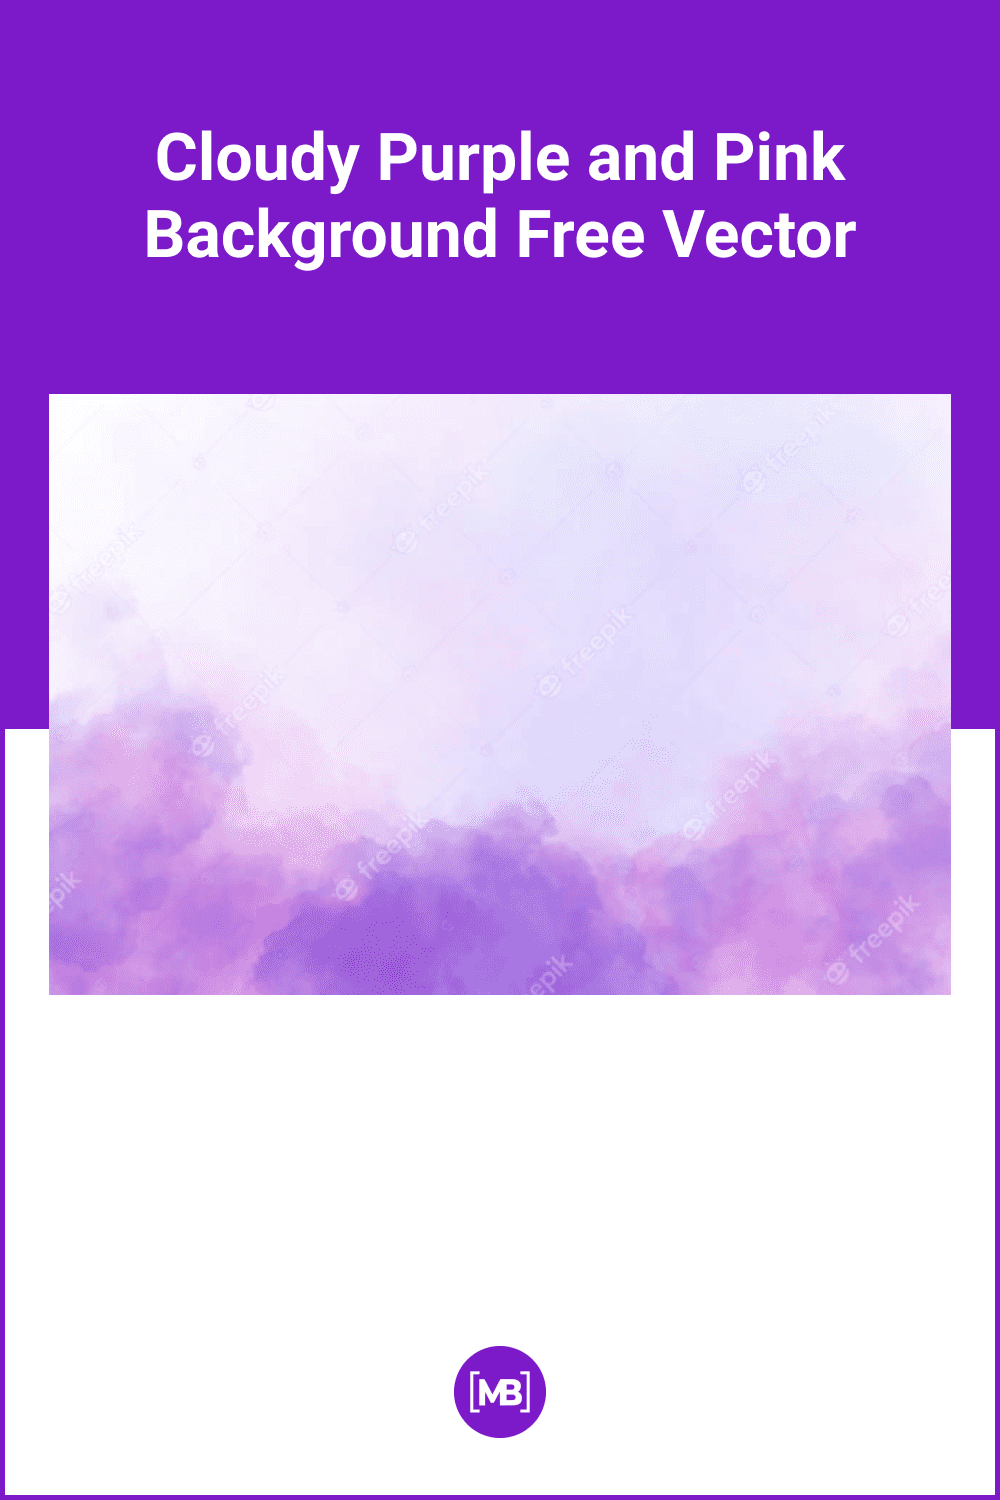 Cloudy purple and pink background.